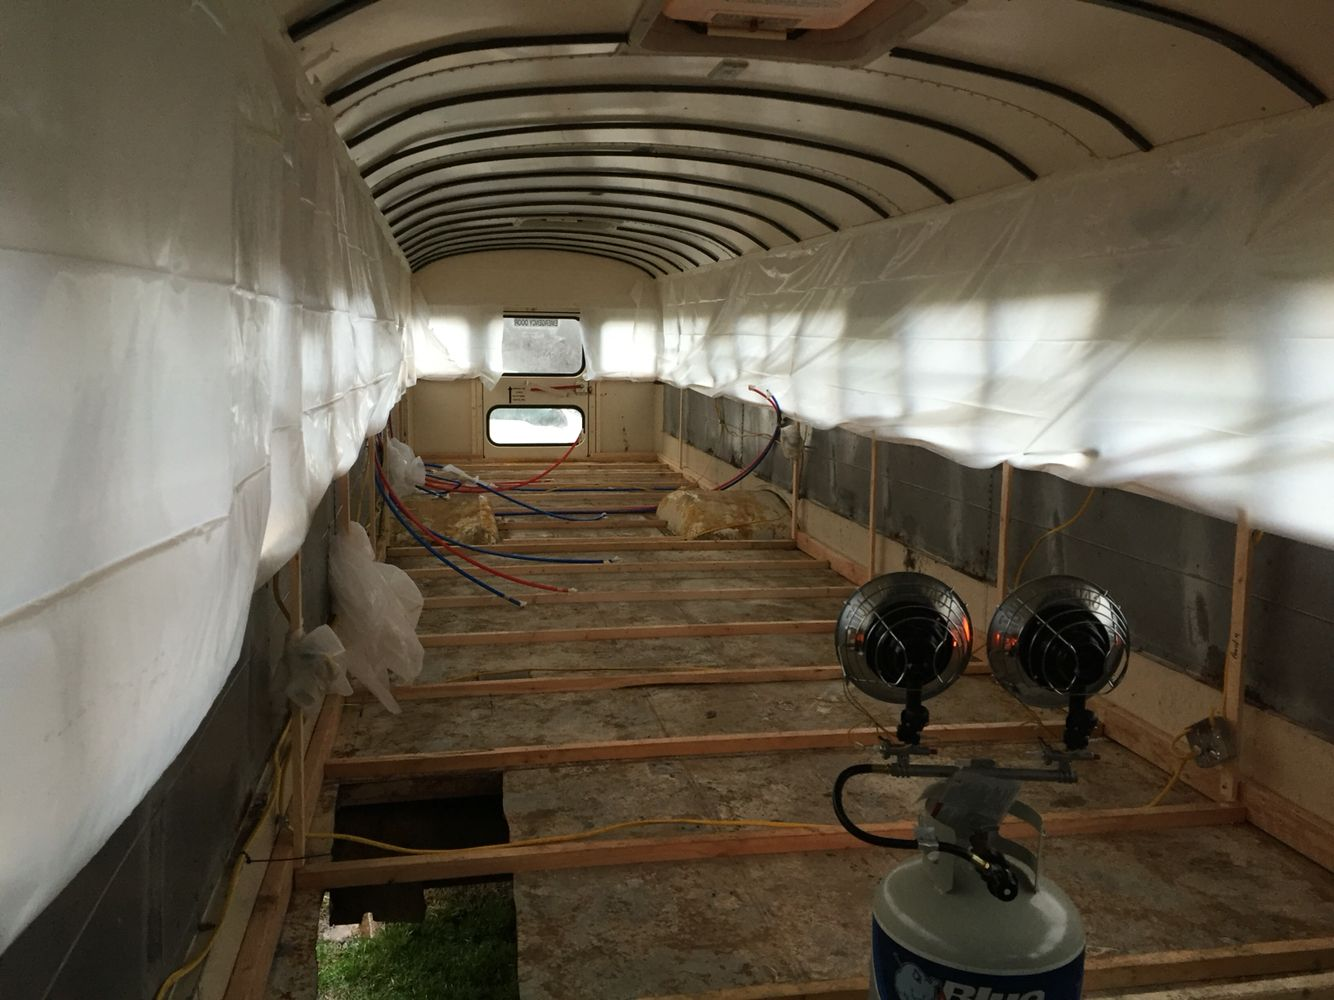 Spray foam insulation for house - Ready For Closed Cell Spray Foam Insulation School Bus Tiny House Conversion Tristan Beache